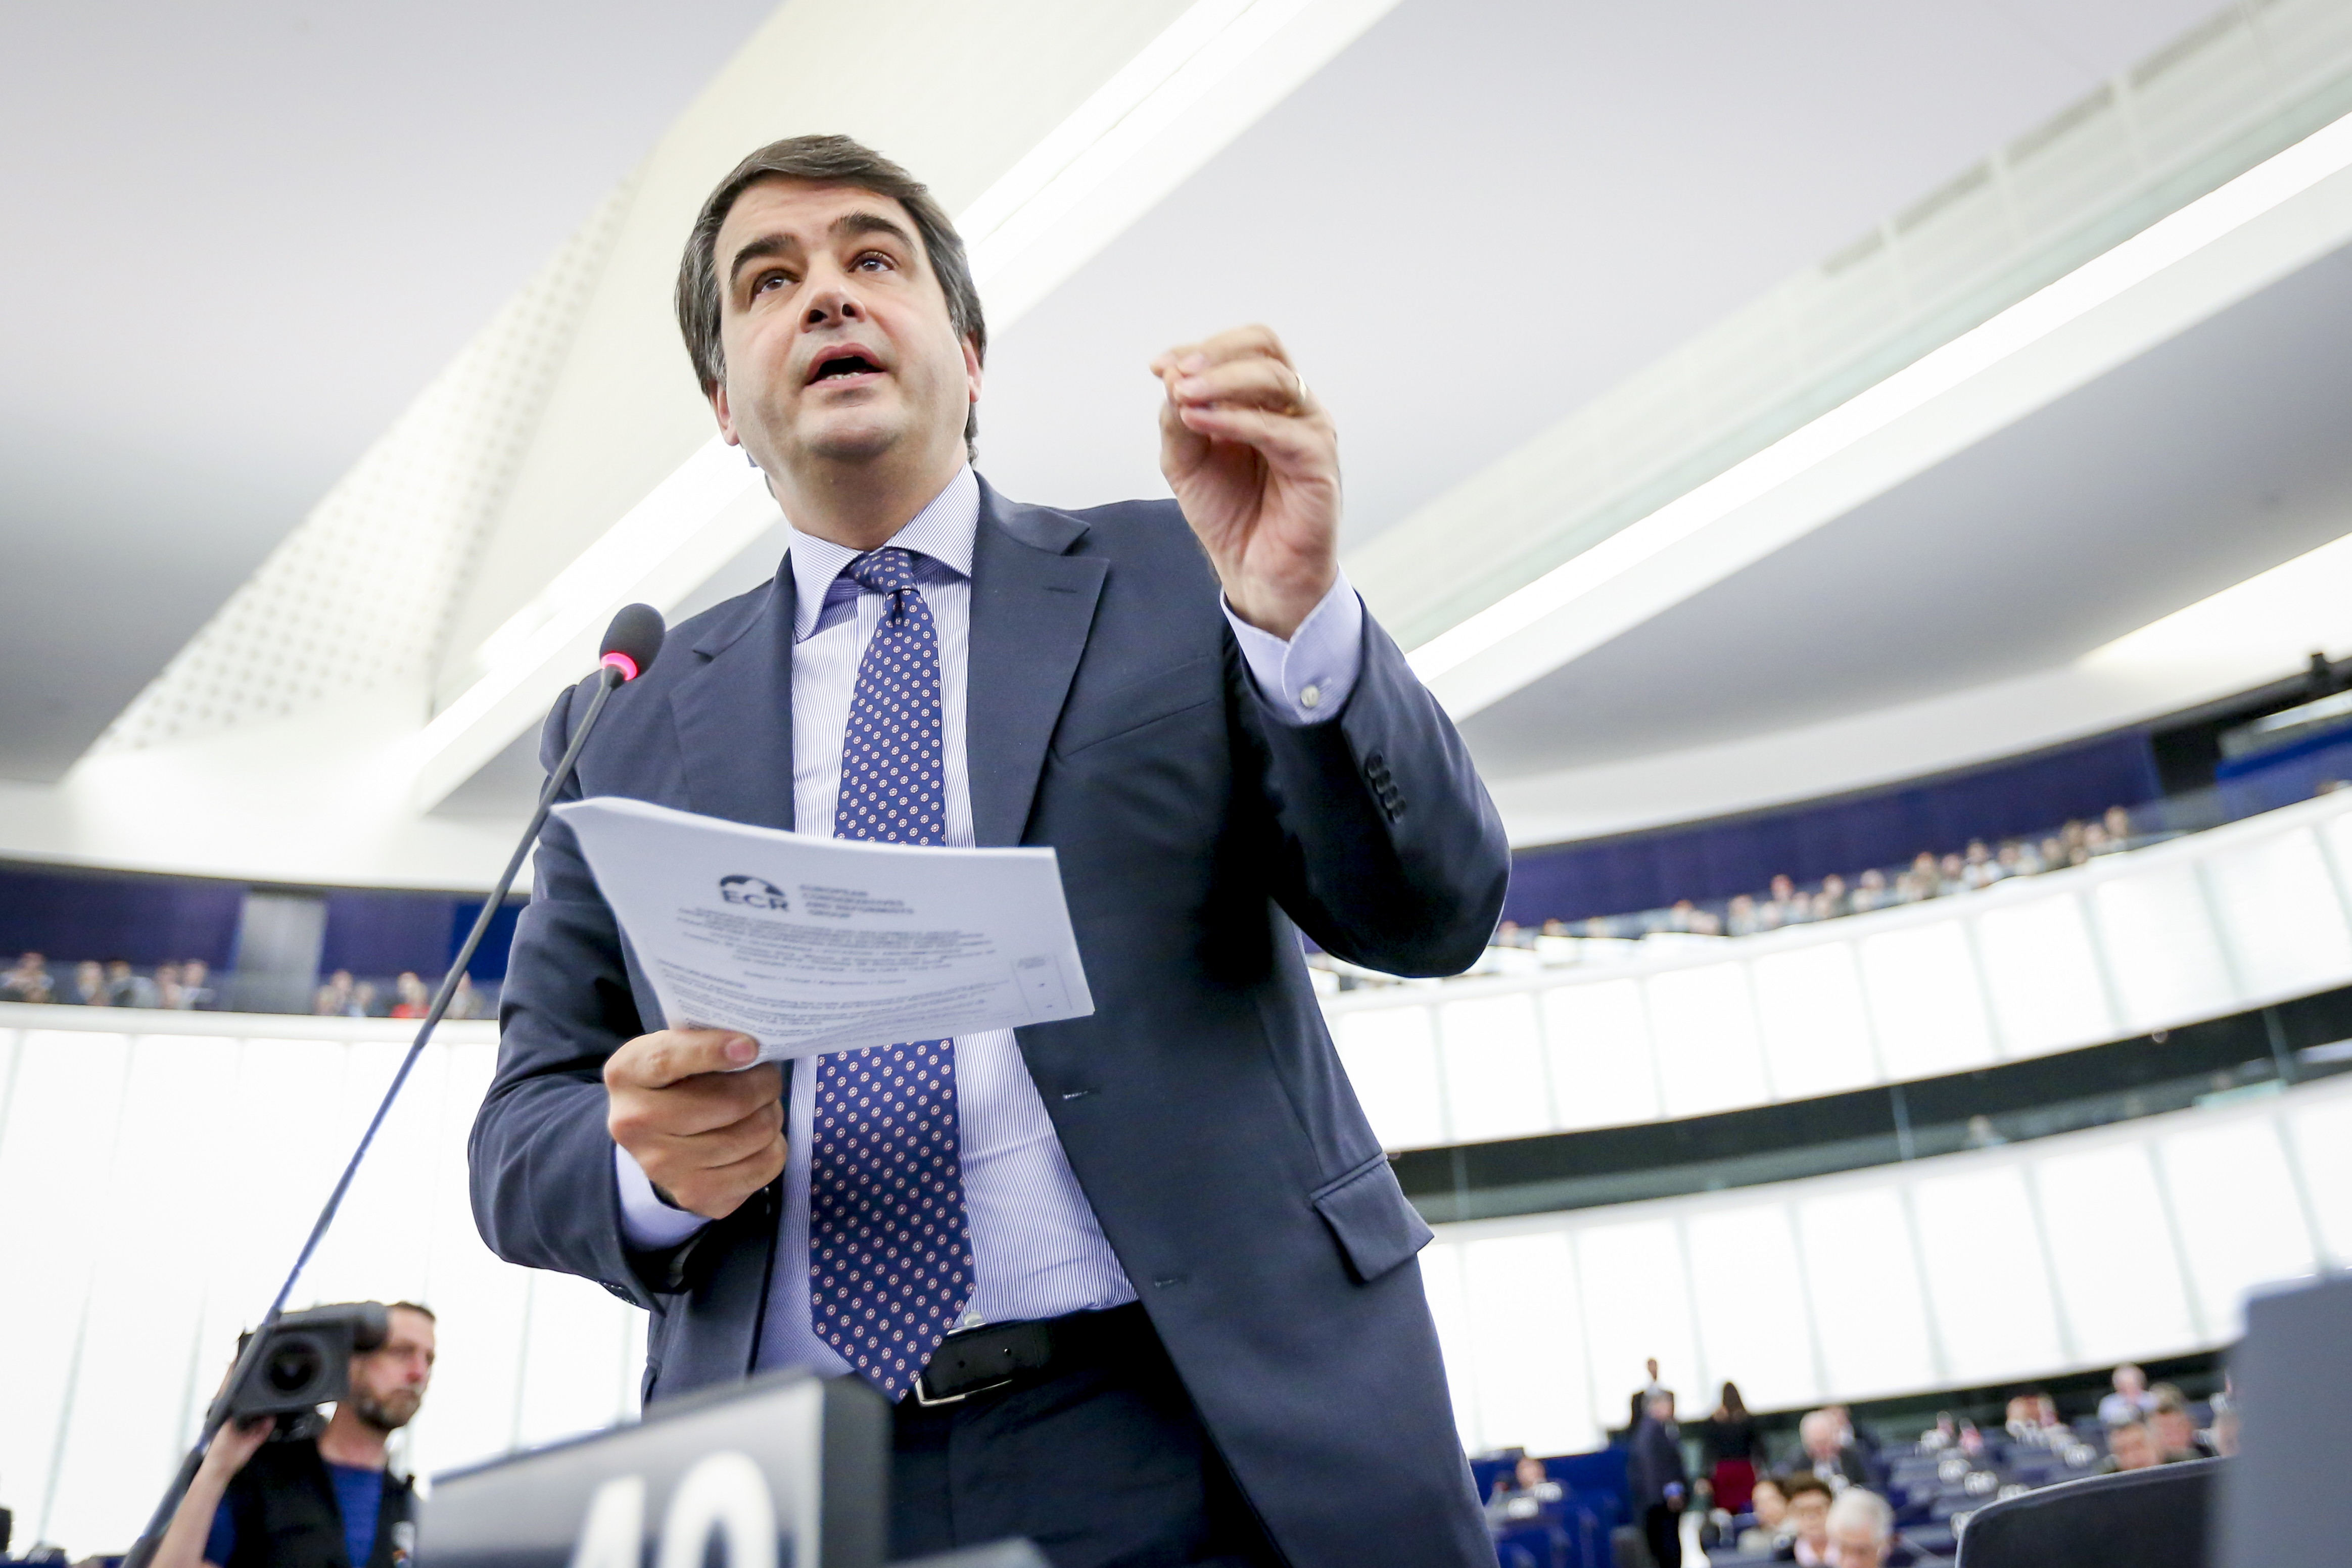 Co-Chairman Raffaele Fitto: Now, it is time to show true European solidarity